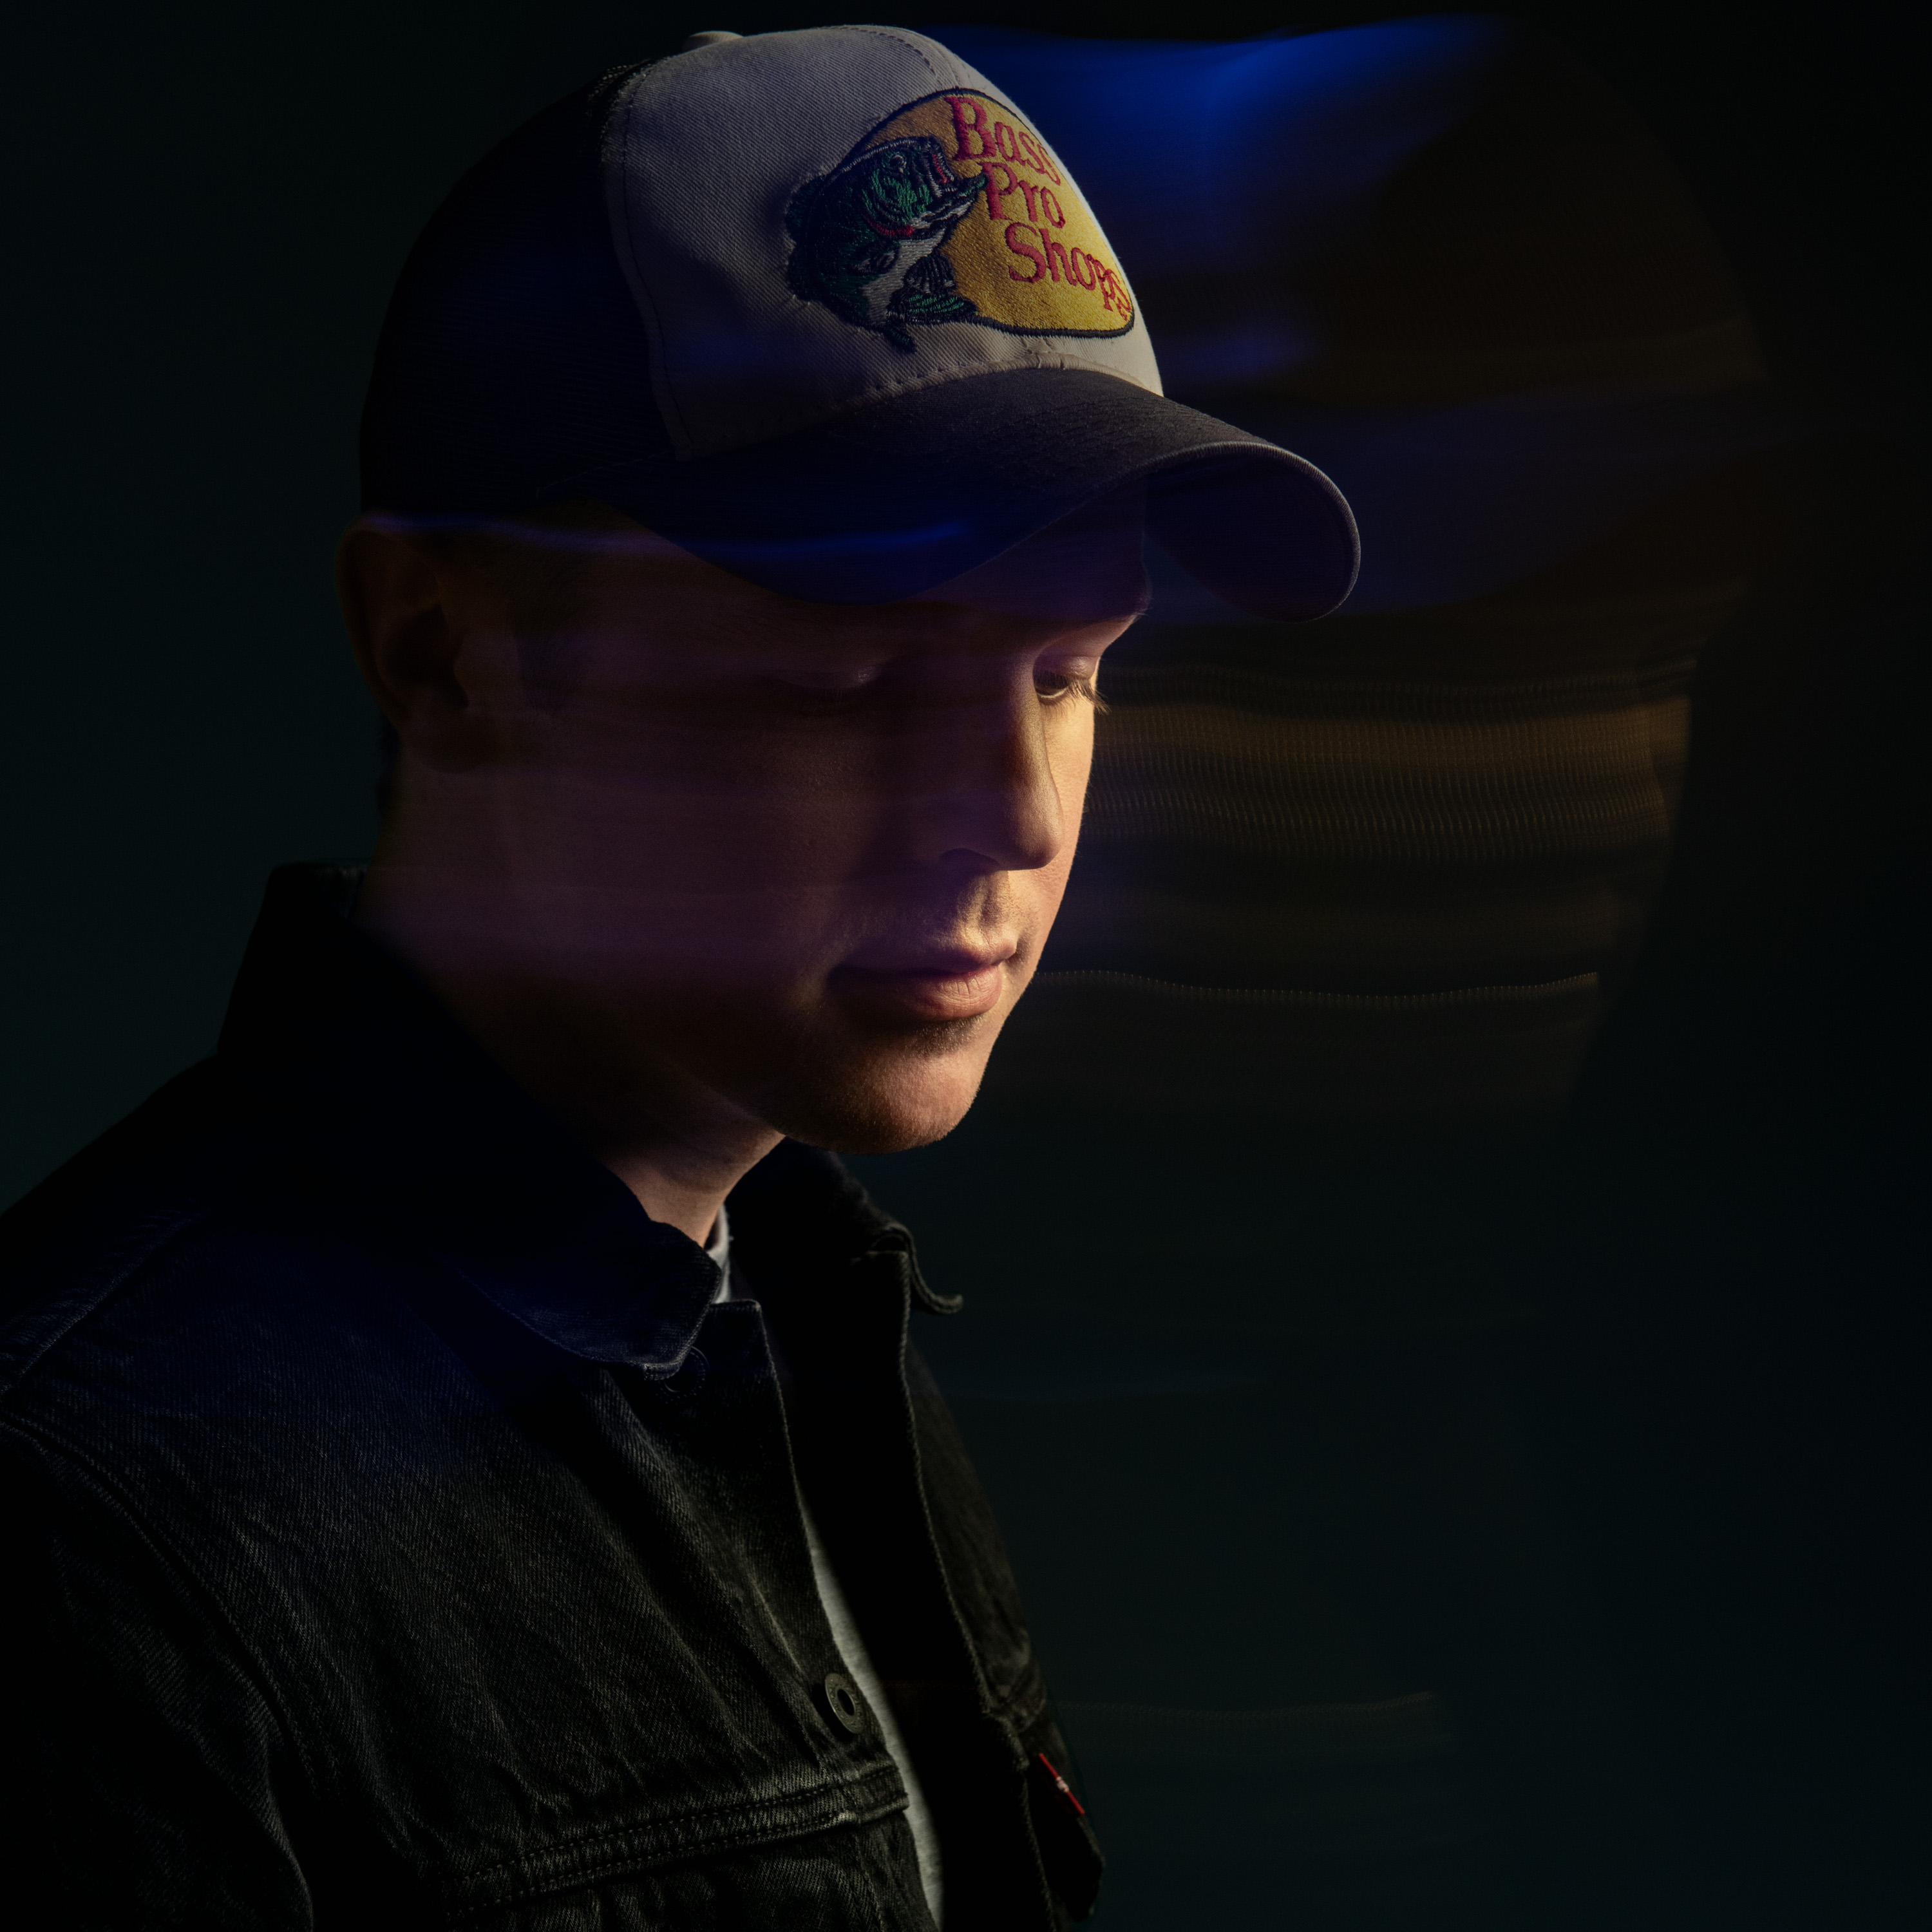 TRAVIS DENNING SET TO HEADLINE PRE-RACE CONCERT A THE BASS PRO SHOPS NIGHT RACE AT BRISTOL MOTOR SPEEDWAY.